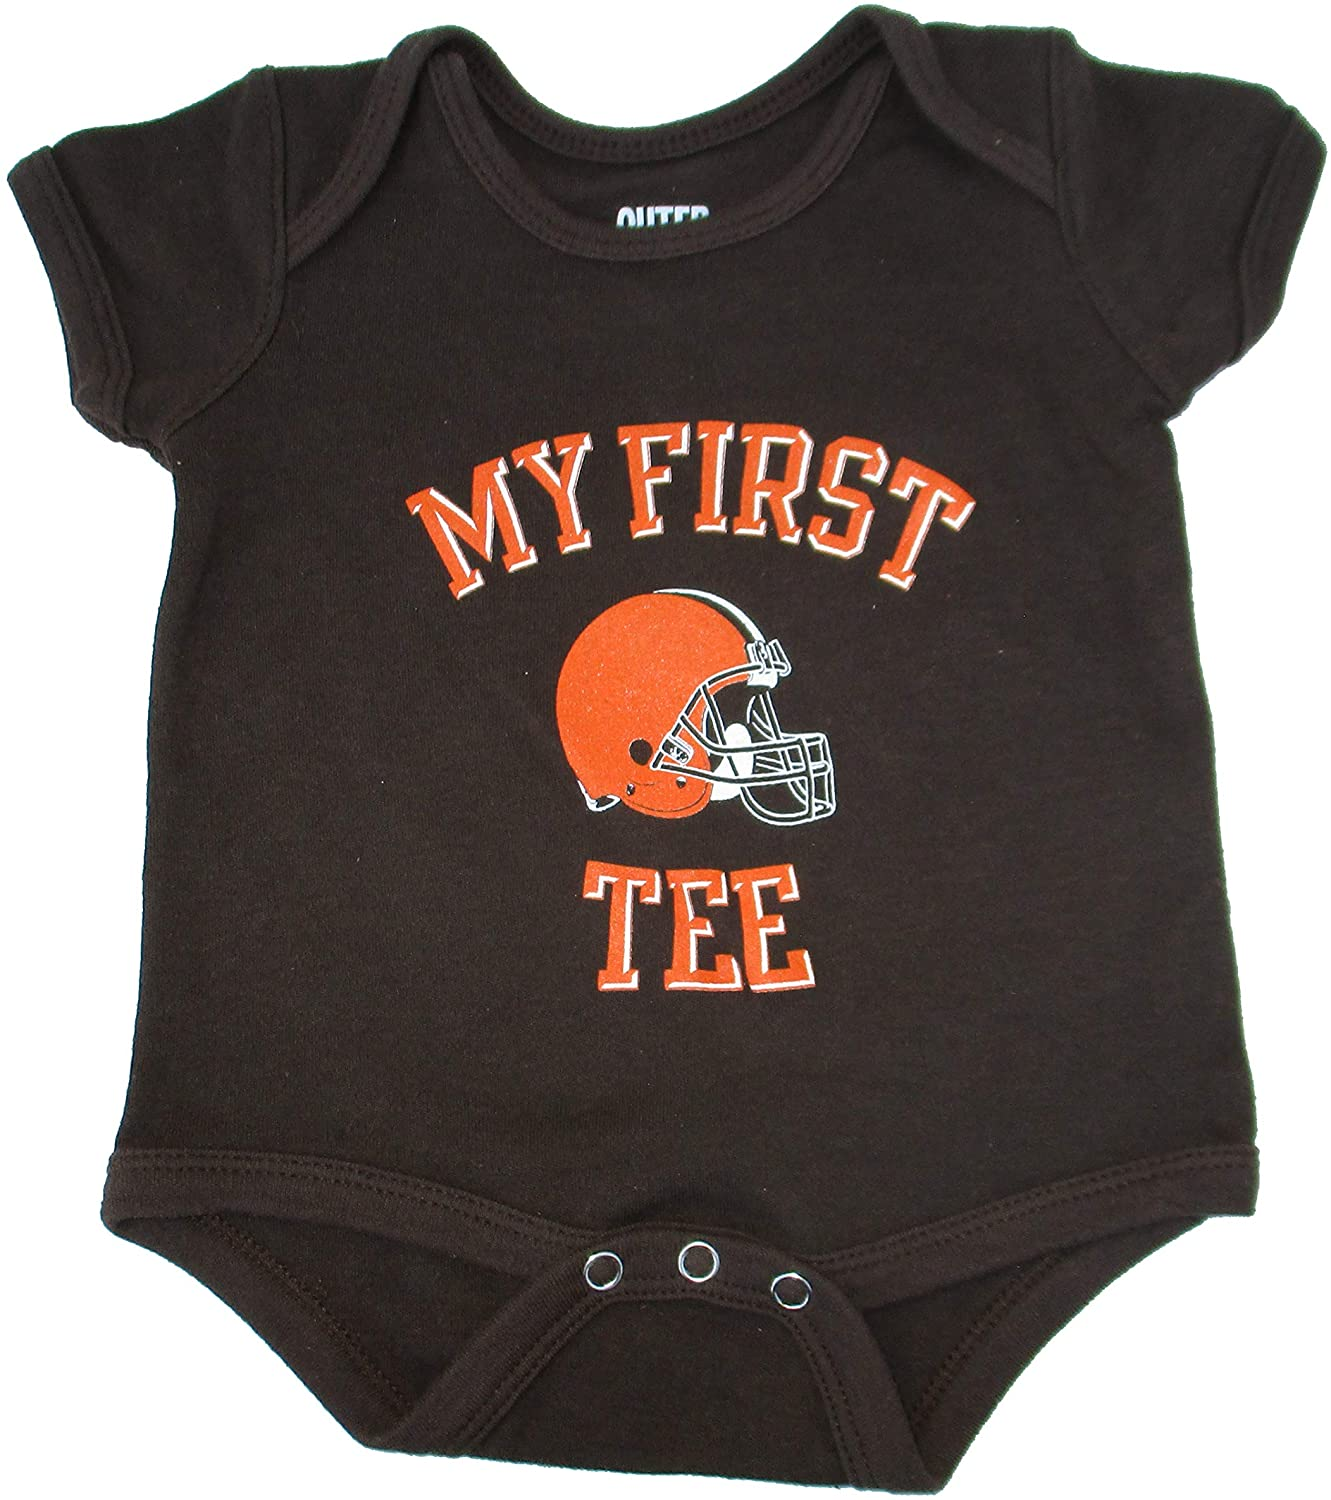 Outerstuff Cleveland Browns My First Tee Infant One Piece Size 0-3 Months Bodysuit Helmet Logo - Team Colors